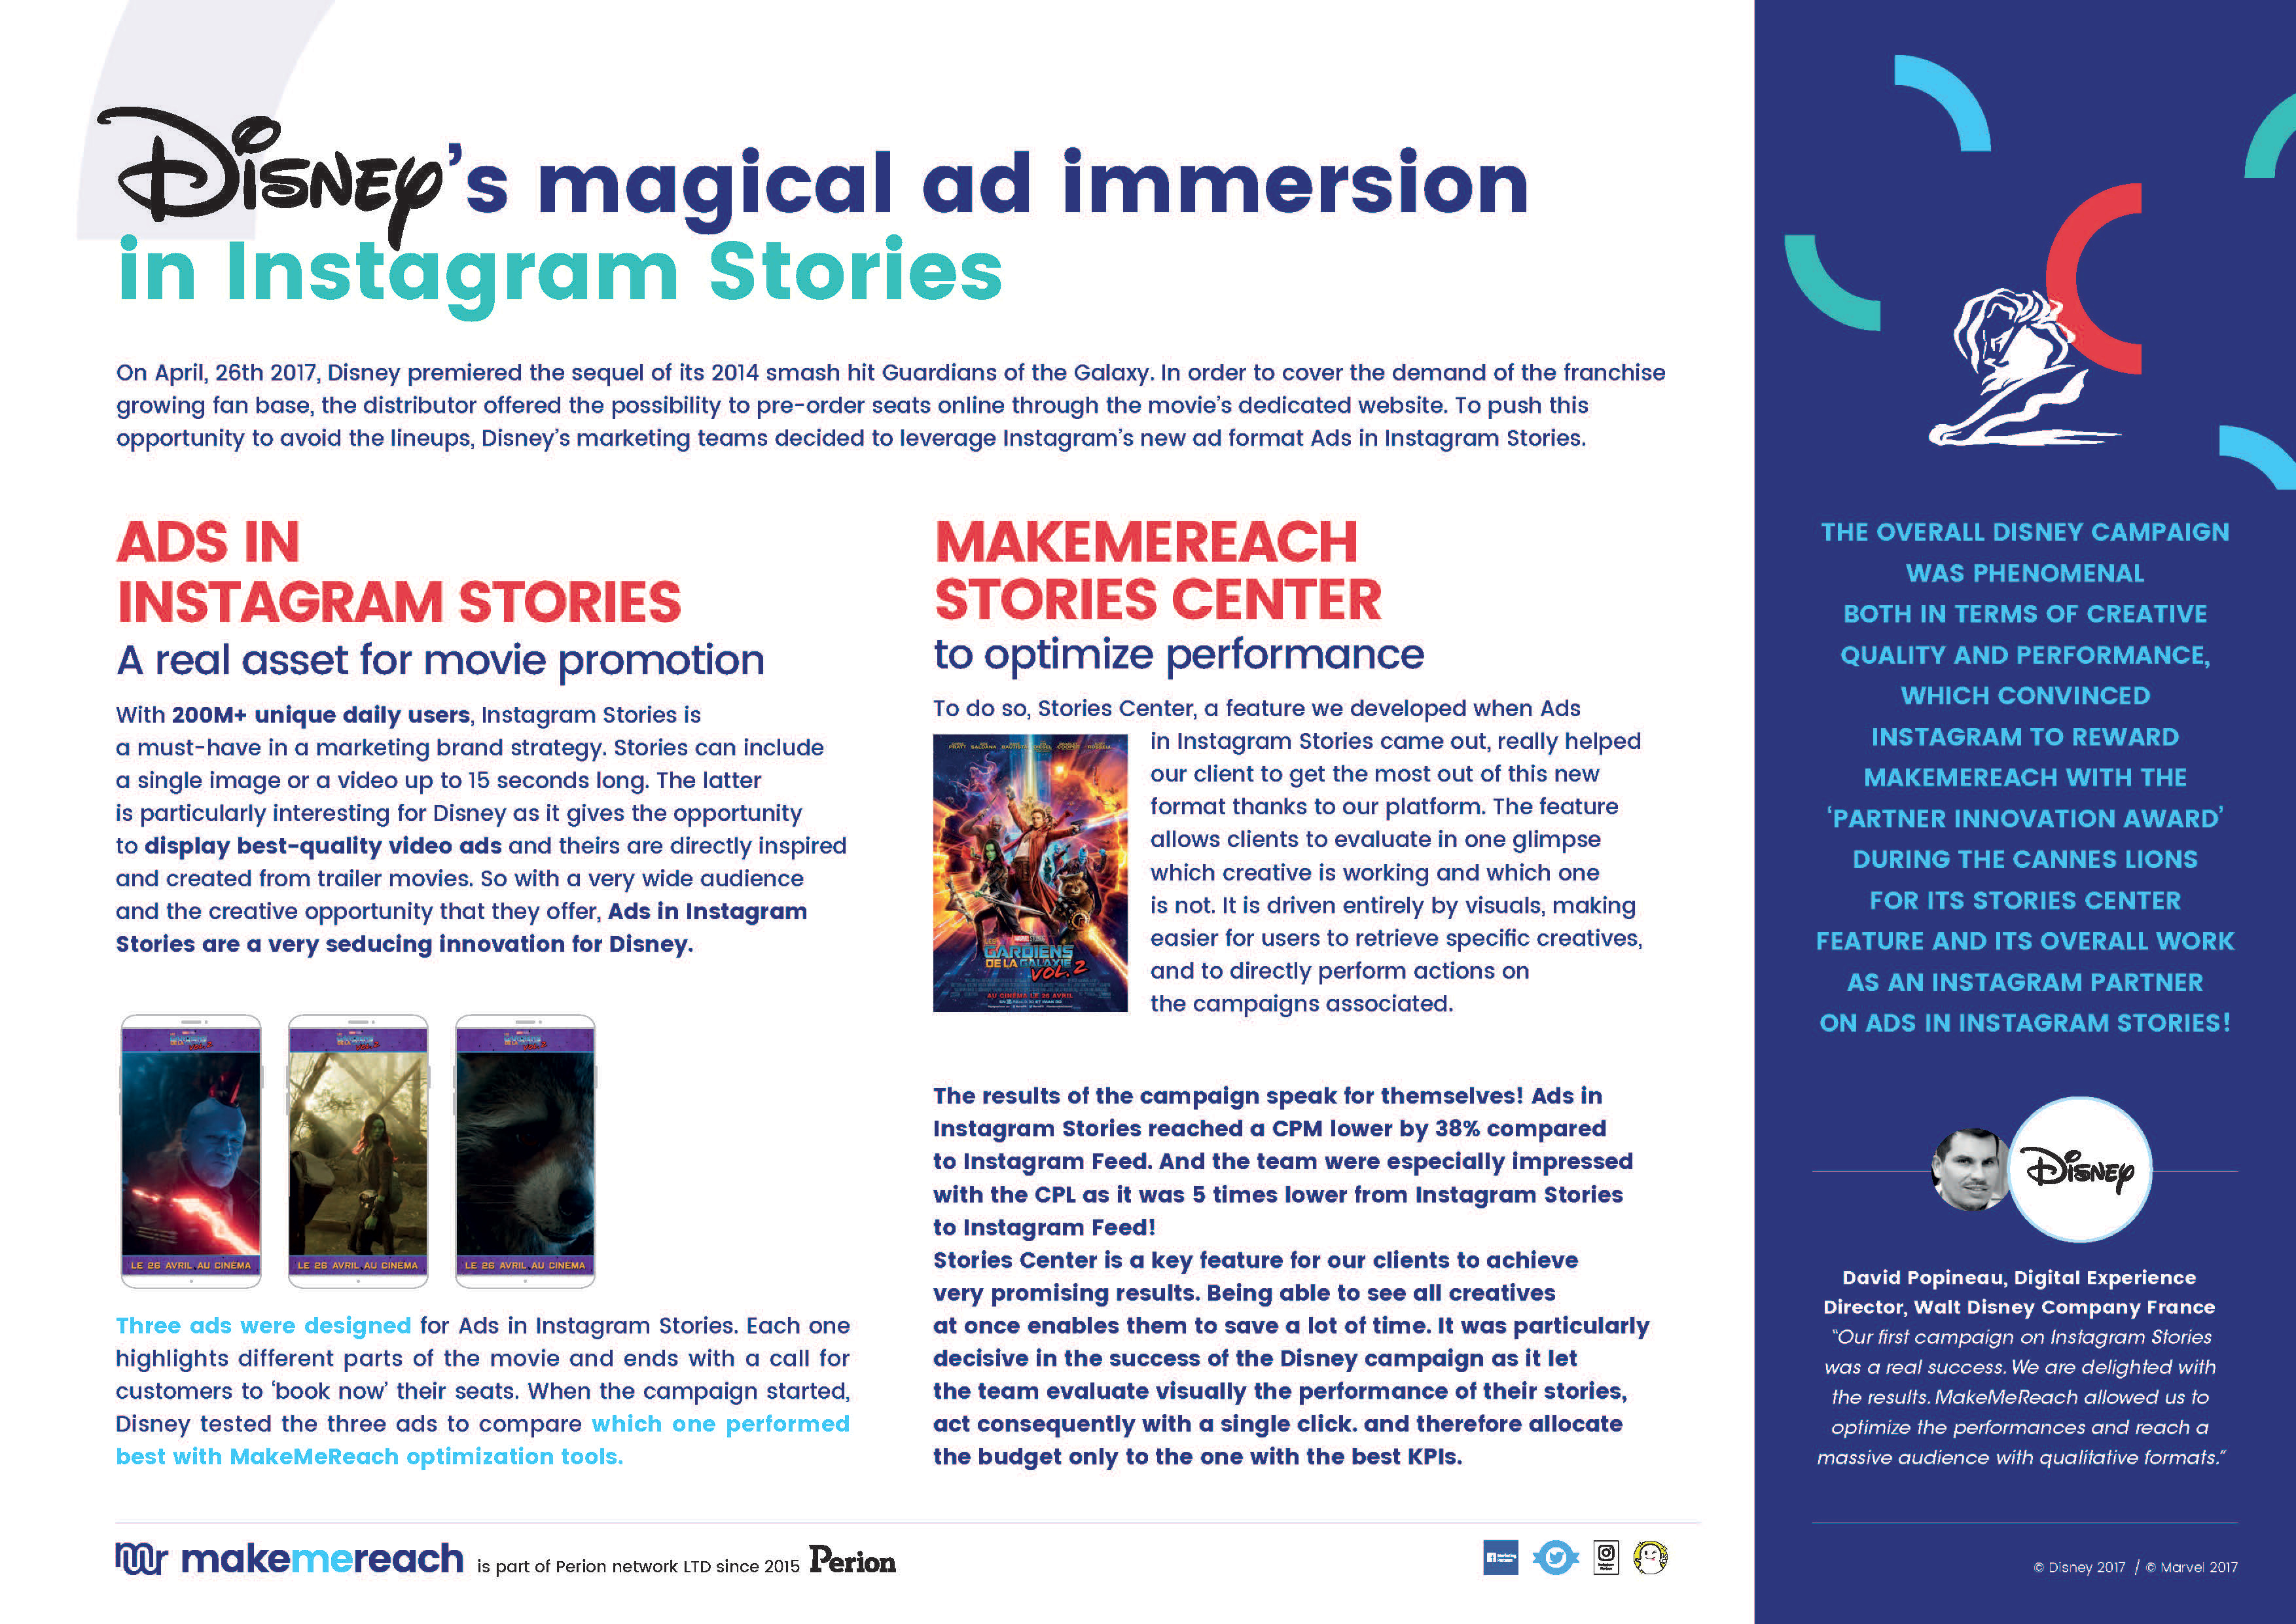 Disney's magical ad immersion in Instagram Stories (Photo: Business Wire)